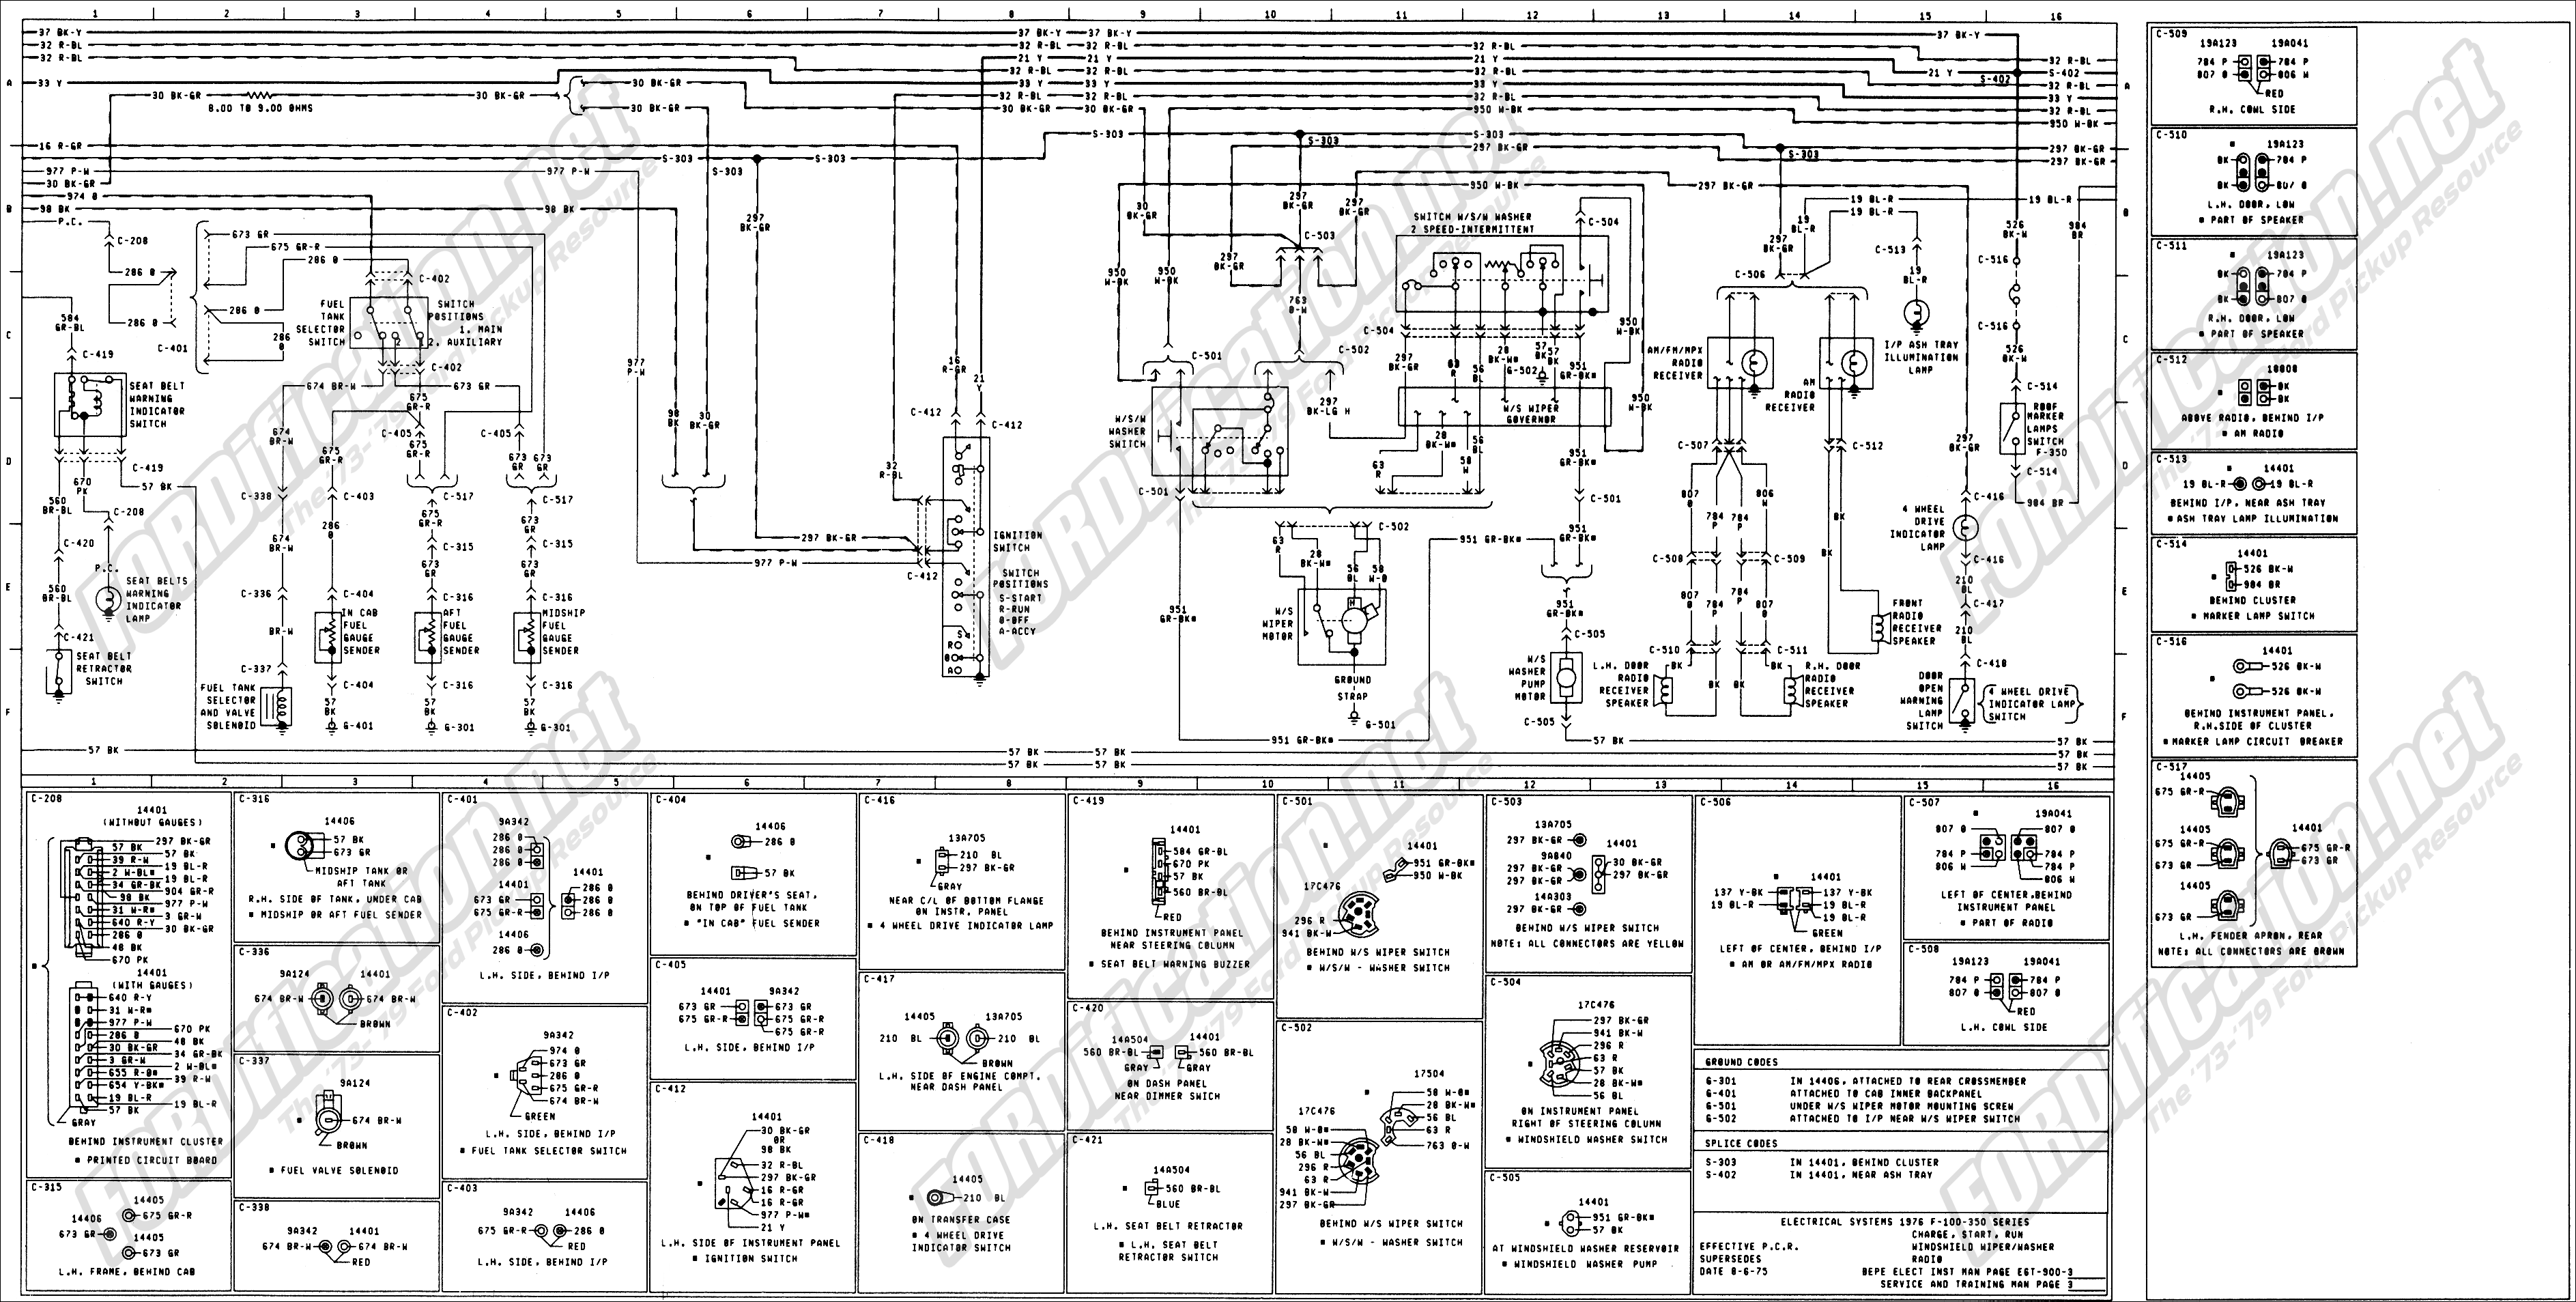 wiring diagram 2001 f250 v1 0 schematic diagram today